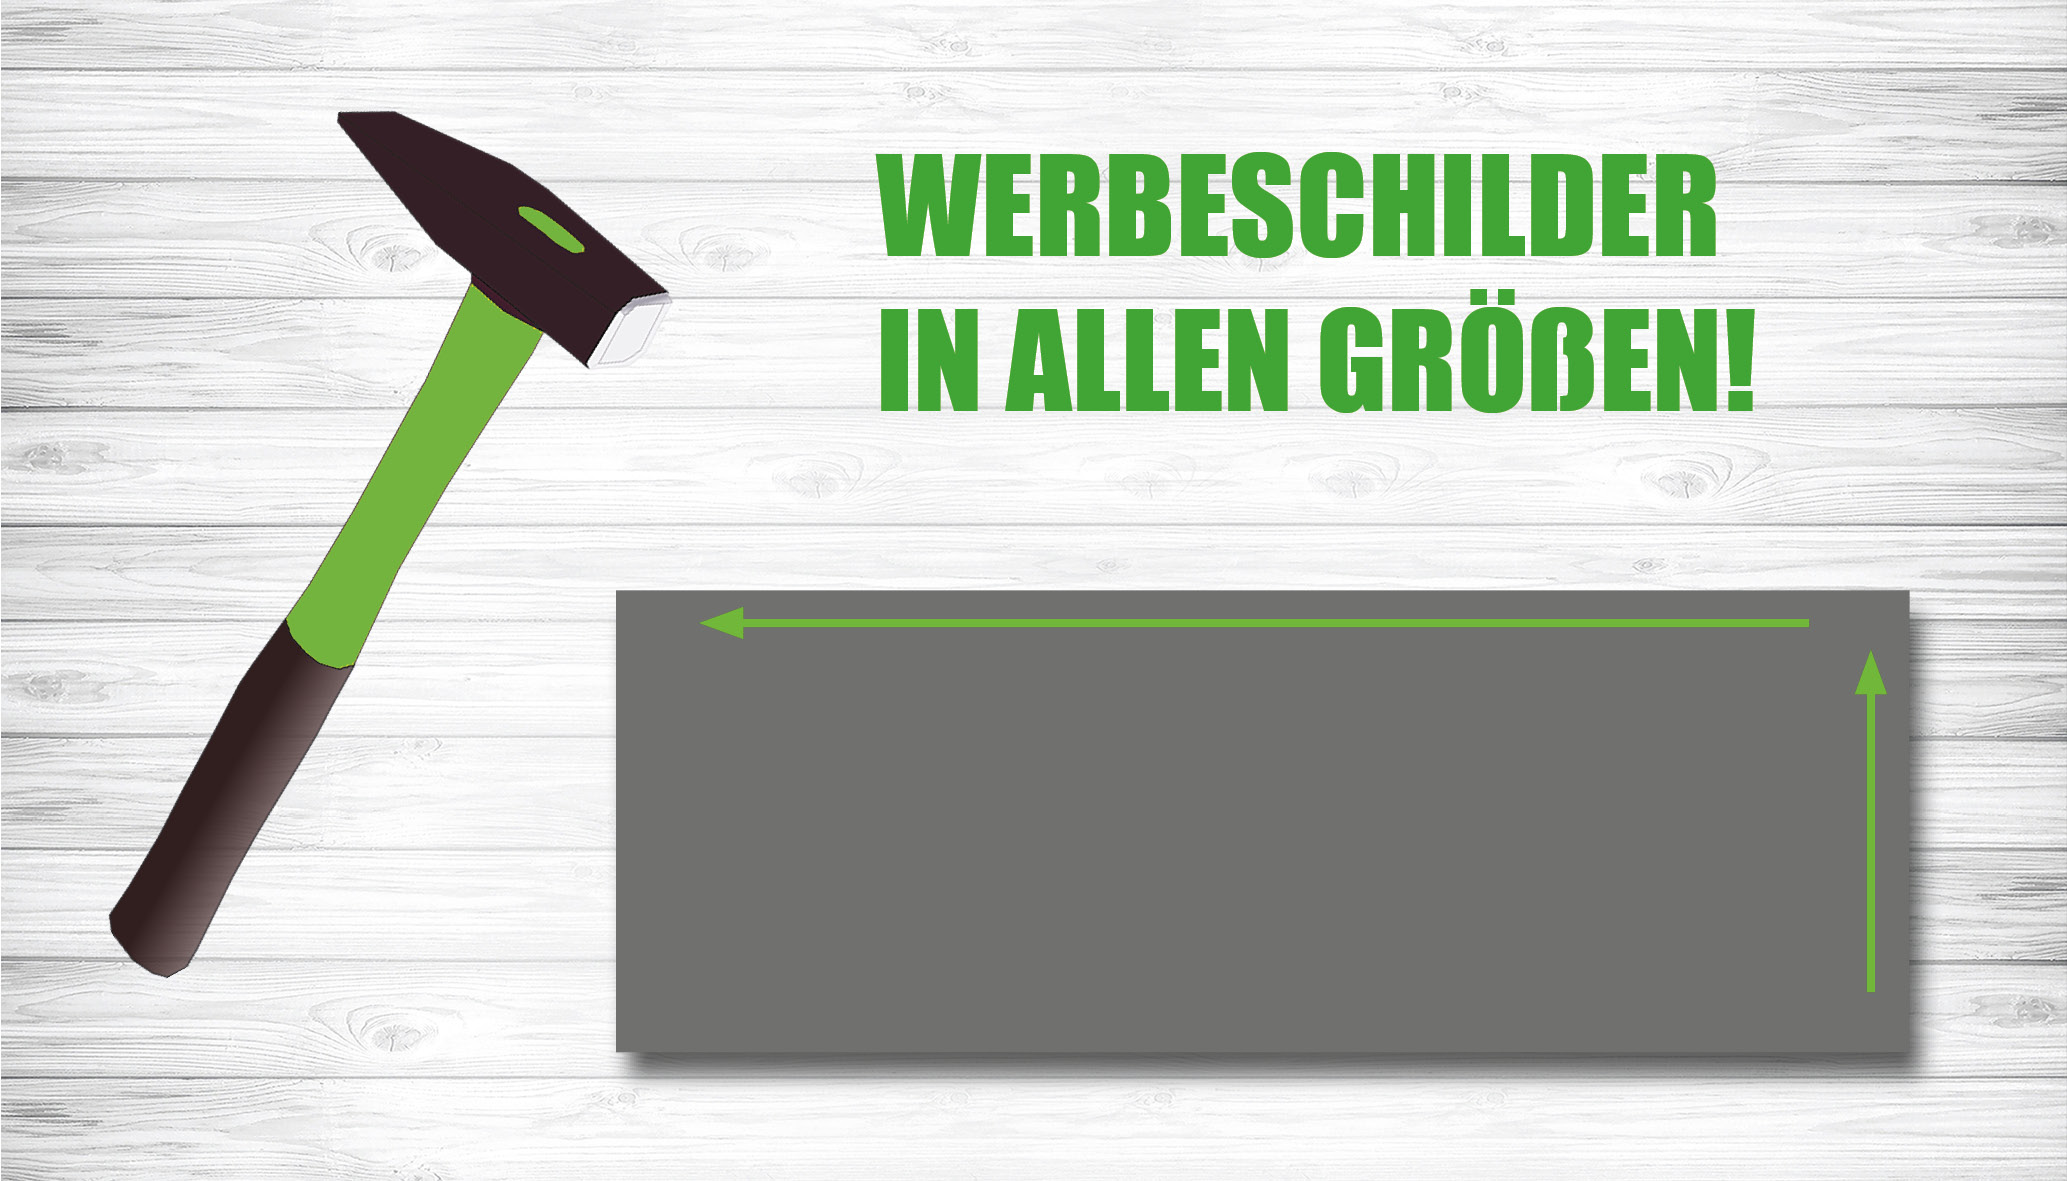 Slideshow Werbeschilder